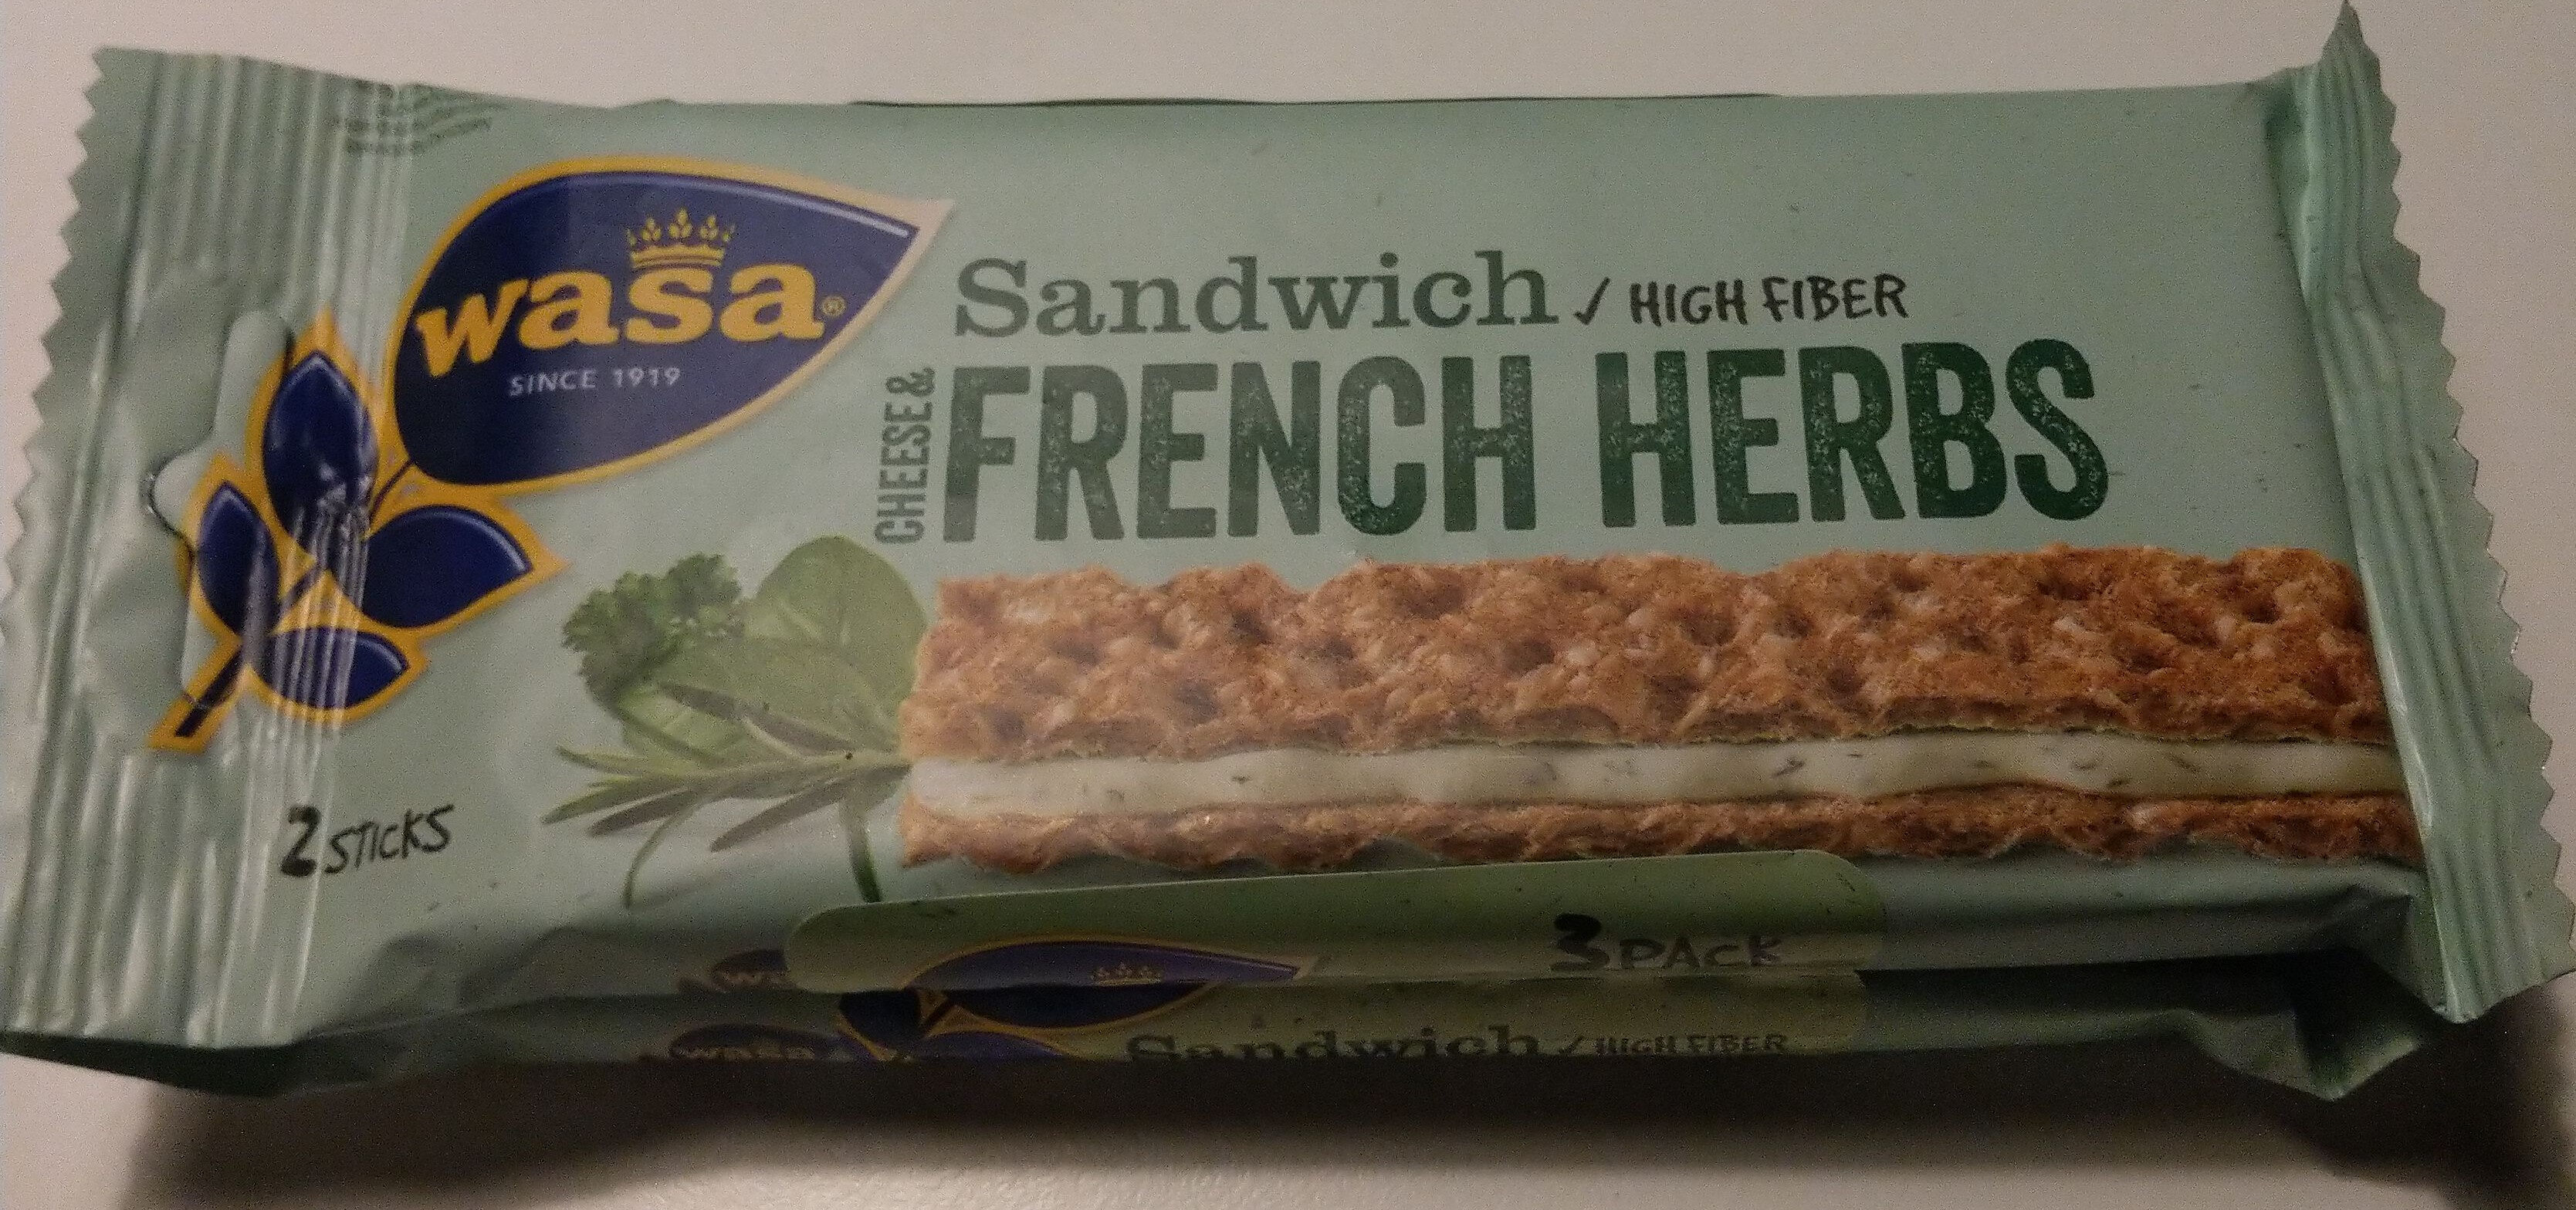 Sandwich Cheese & French Herbs - Produit - de